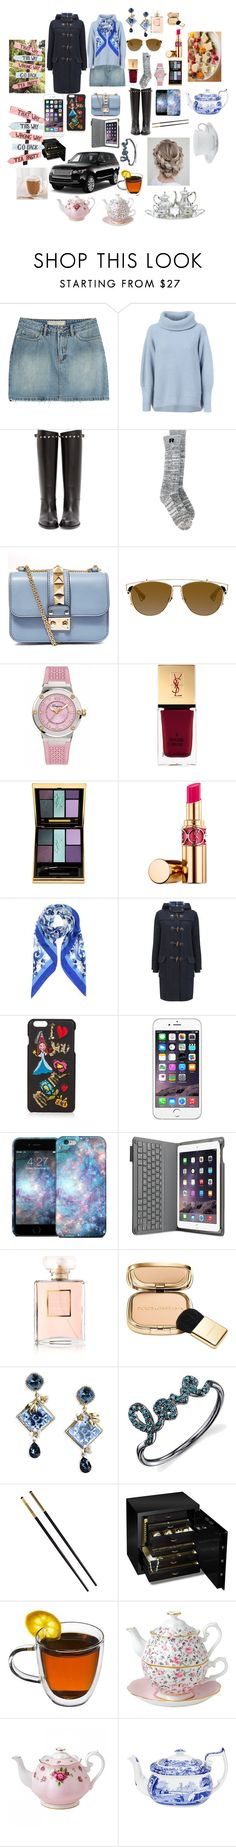 """TEA PARTY WITH MY FRIENDS!!"" by kukl ❤ liked on Polyvore featuring Marc by Marc Jacobs, Maison Ullens, Valentino, Rochas, Christian Dior, Salvatore Ferragamo, Yves Saint Laurent, Dolce&Gabbana, Chanel and Versace"